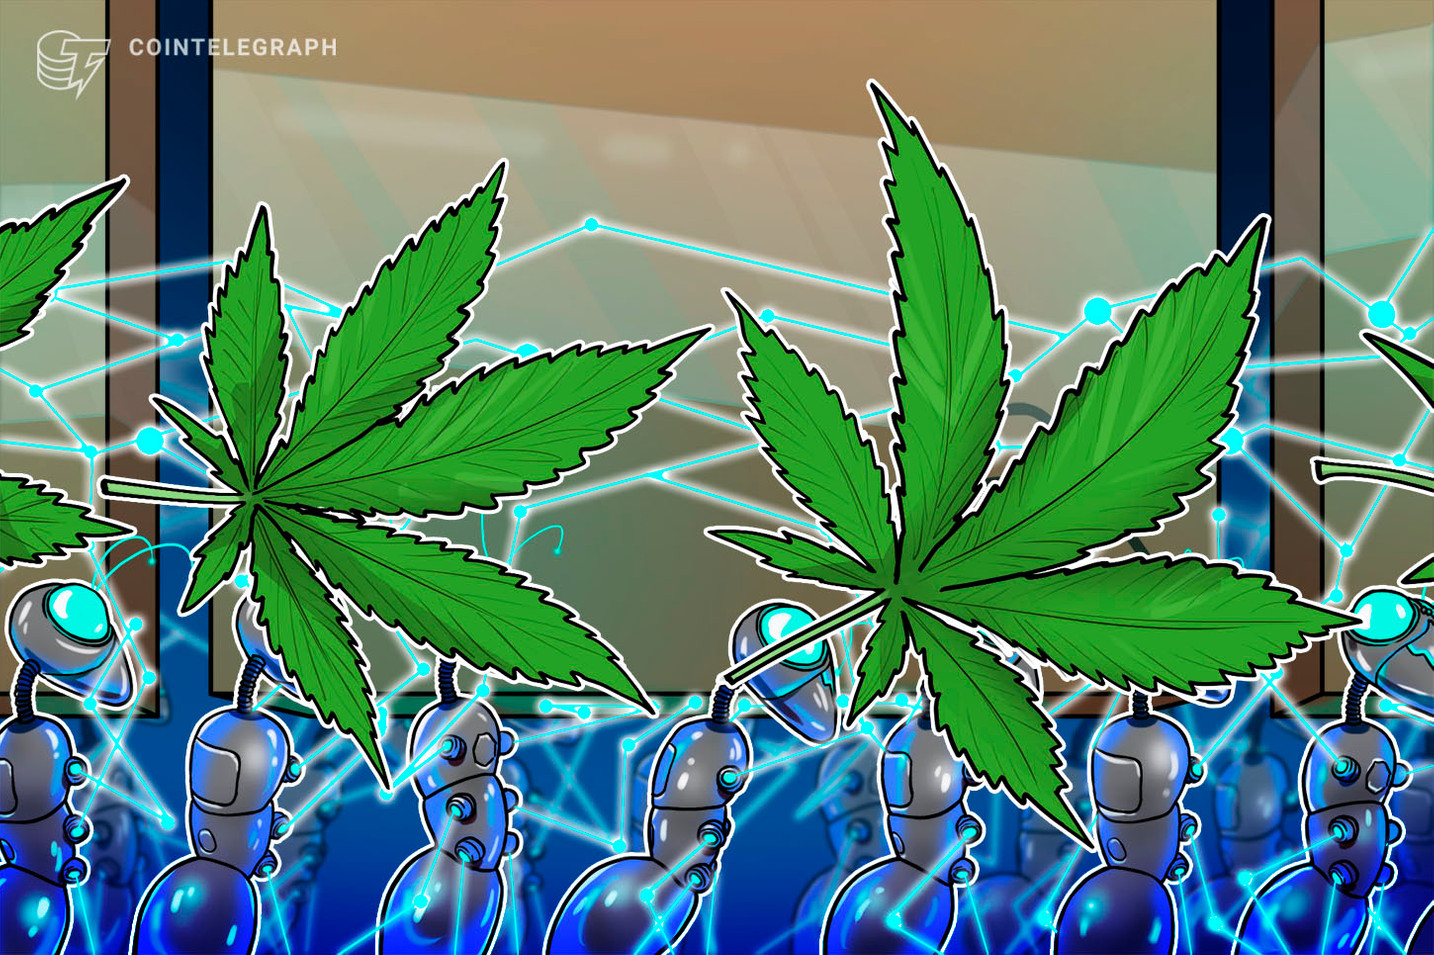 Europe's New 'Seed-to-Shelf' Cannabidiol Blockchain Tracking Tool